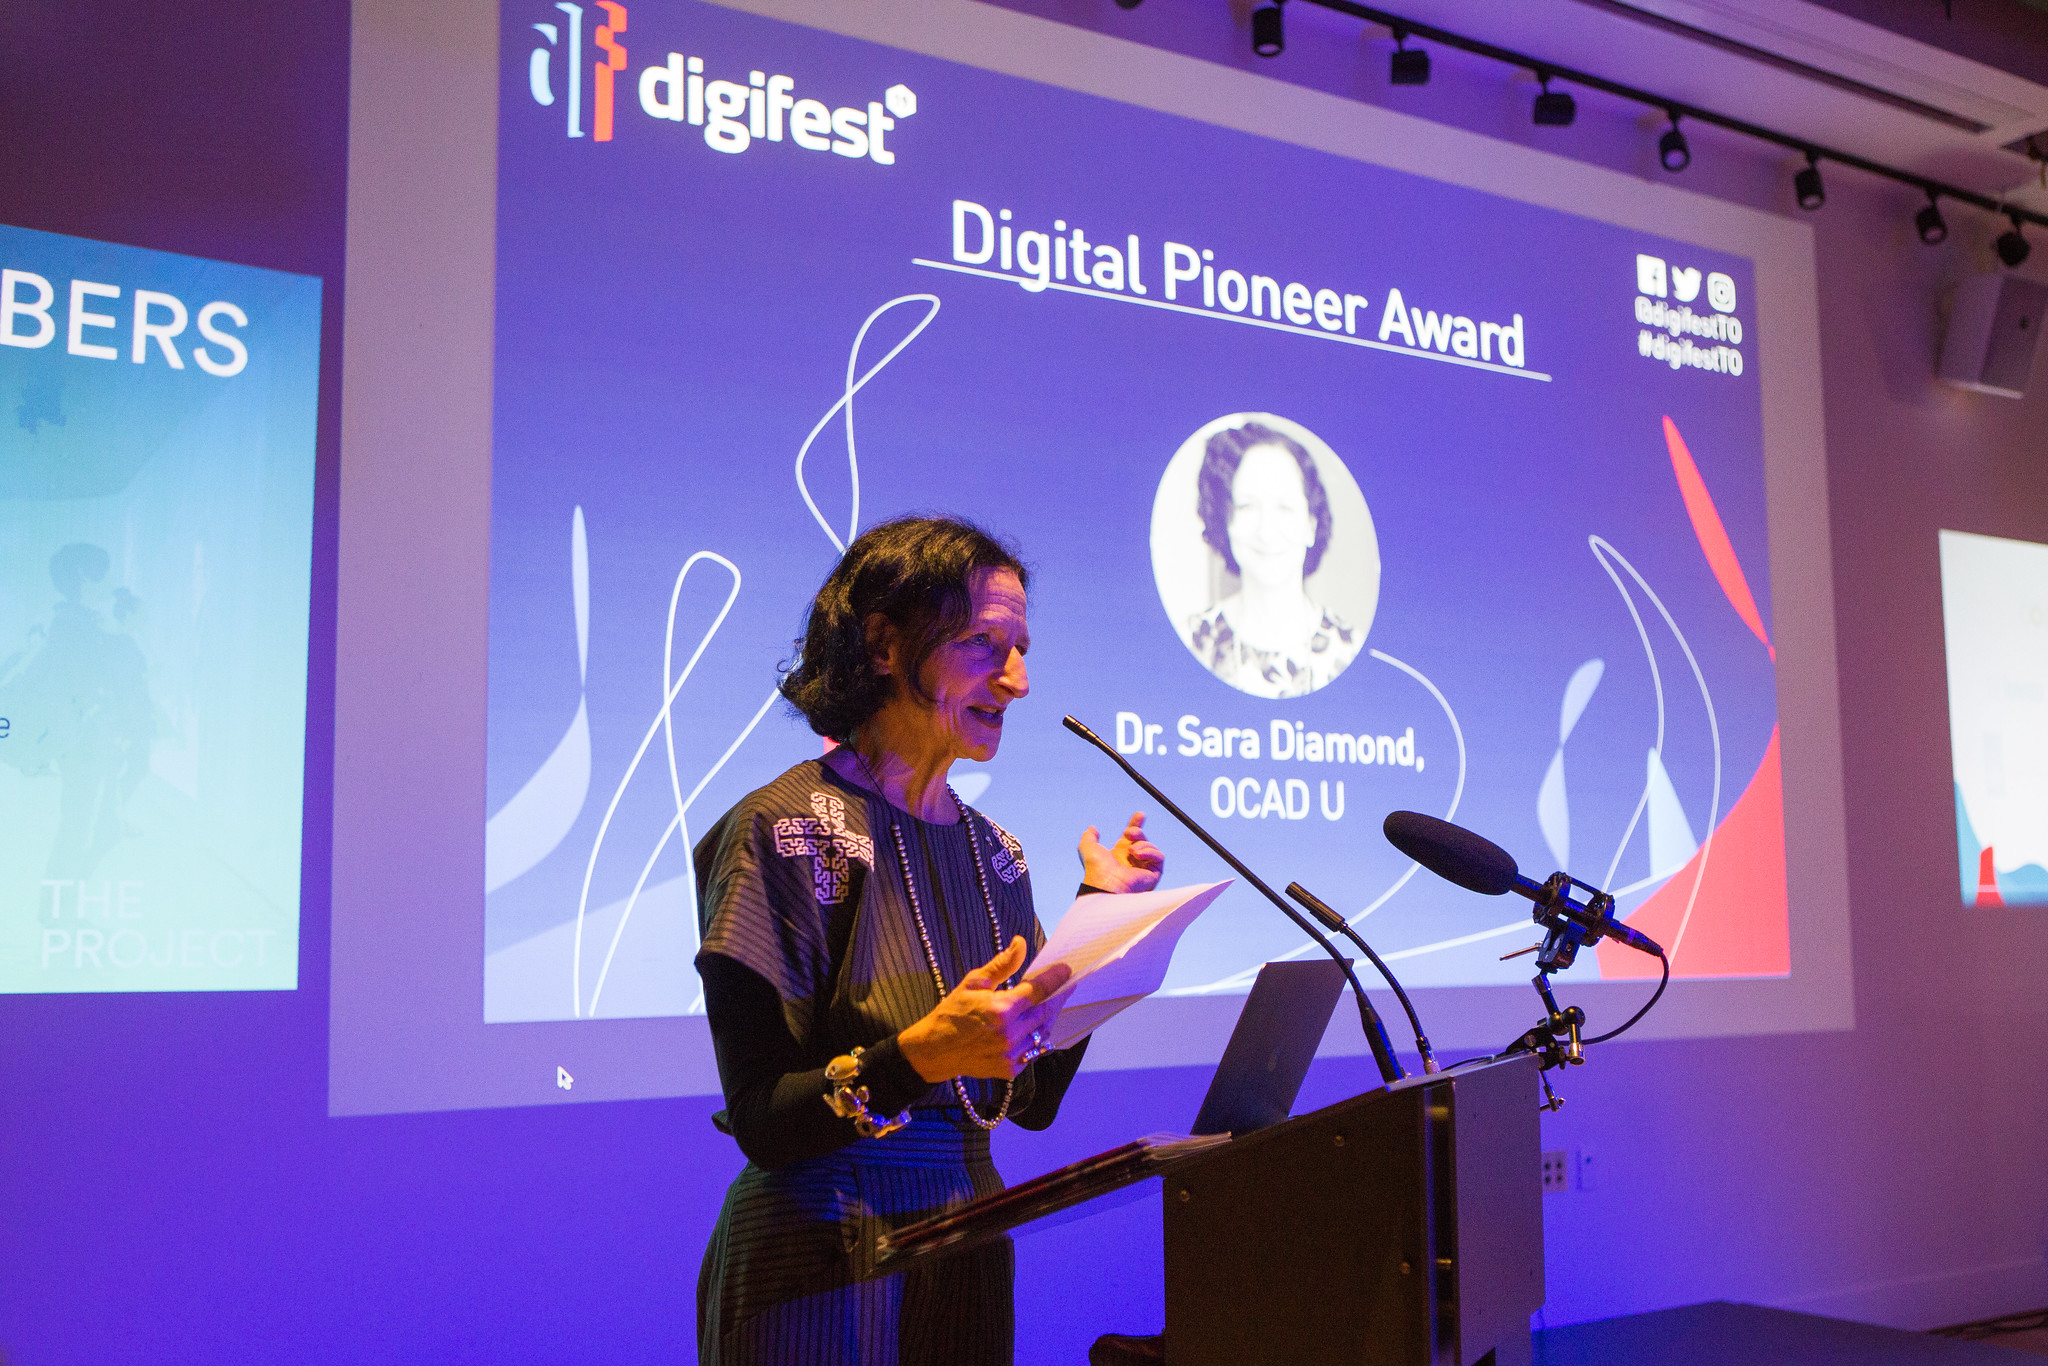 Guest speaker Dr. Sara Diamond is on stage for the Digital Pioneer Award.